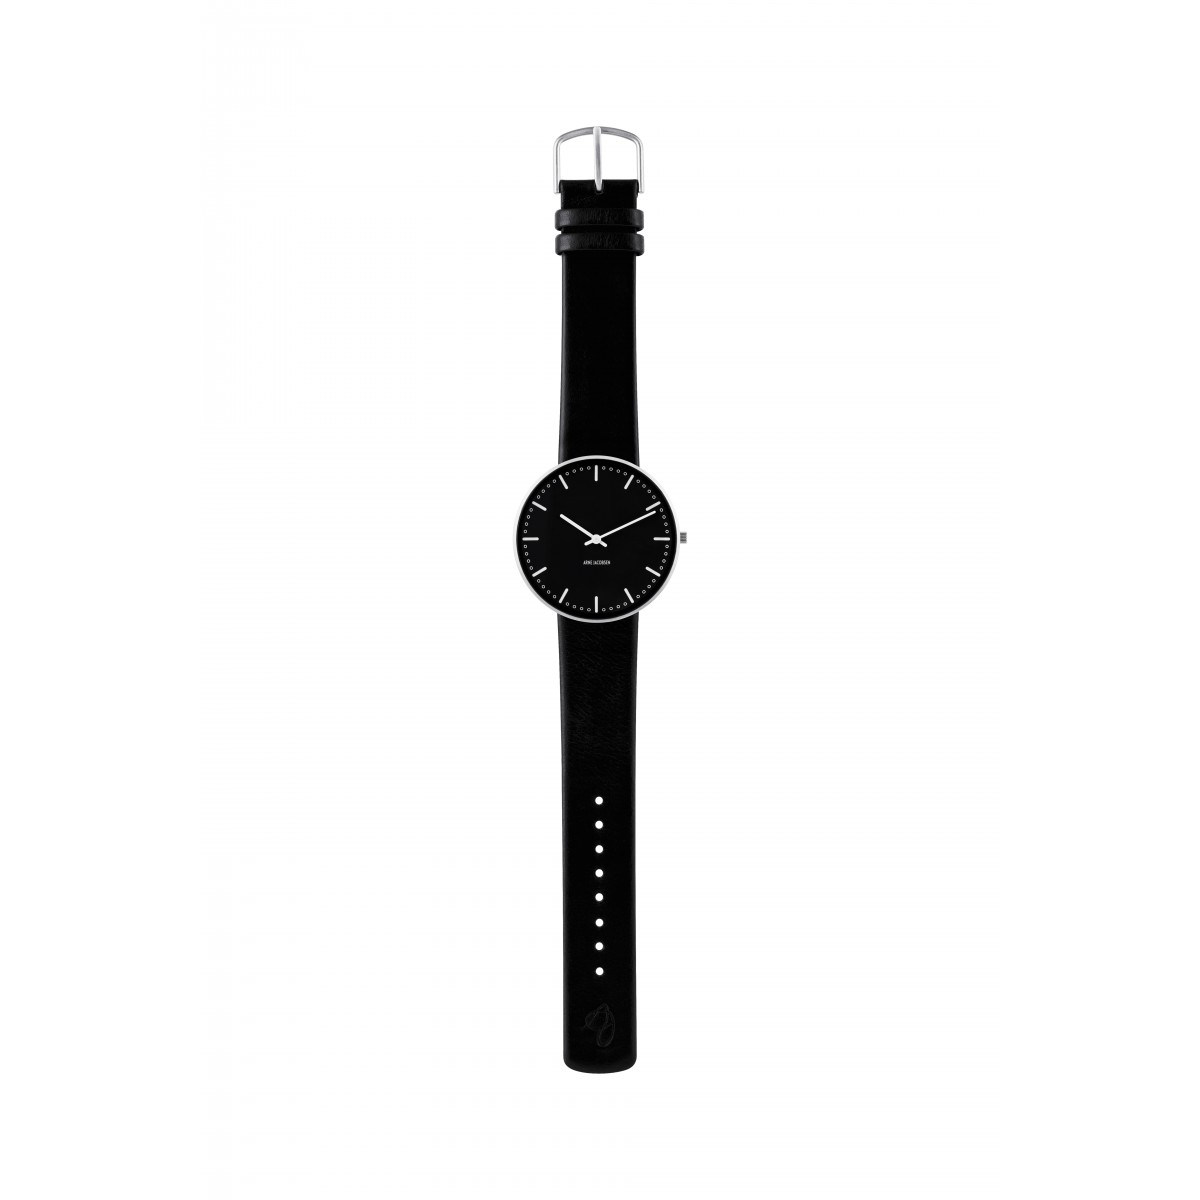 Arne Jacobsen armbåndsur CITY HALL 40 MM sort rem/sort skive-3